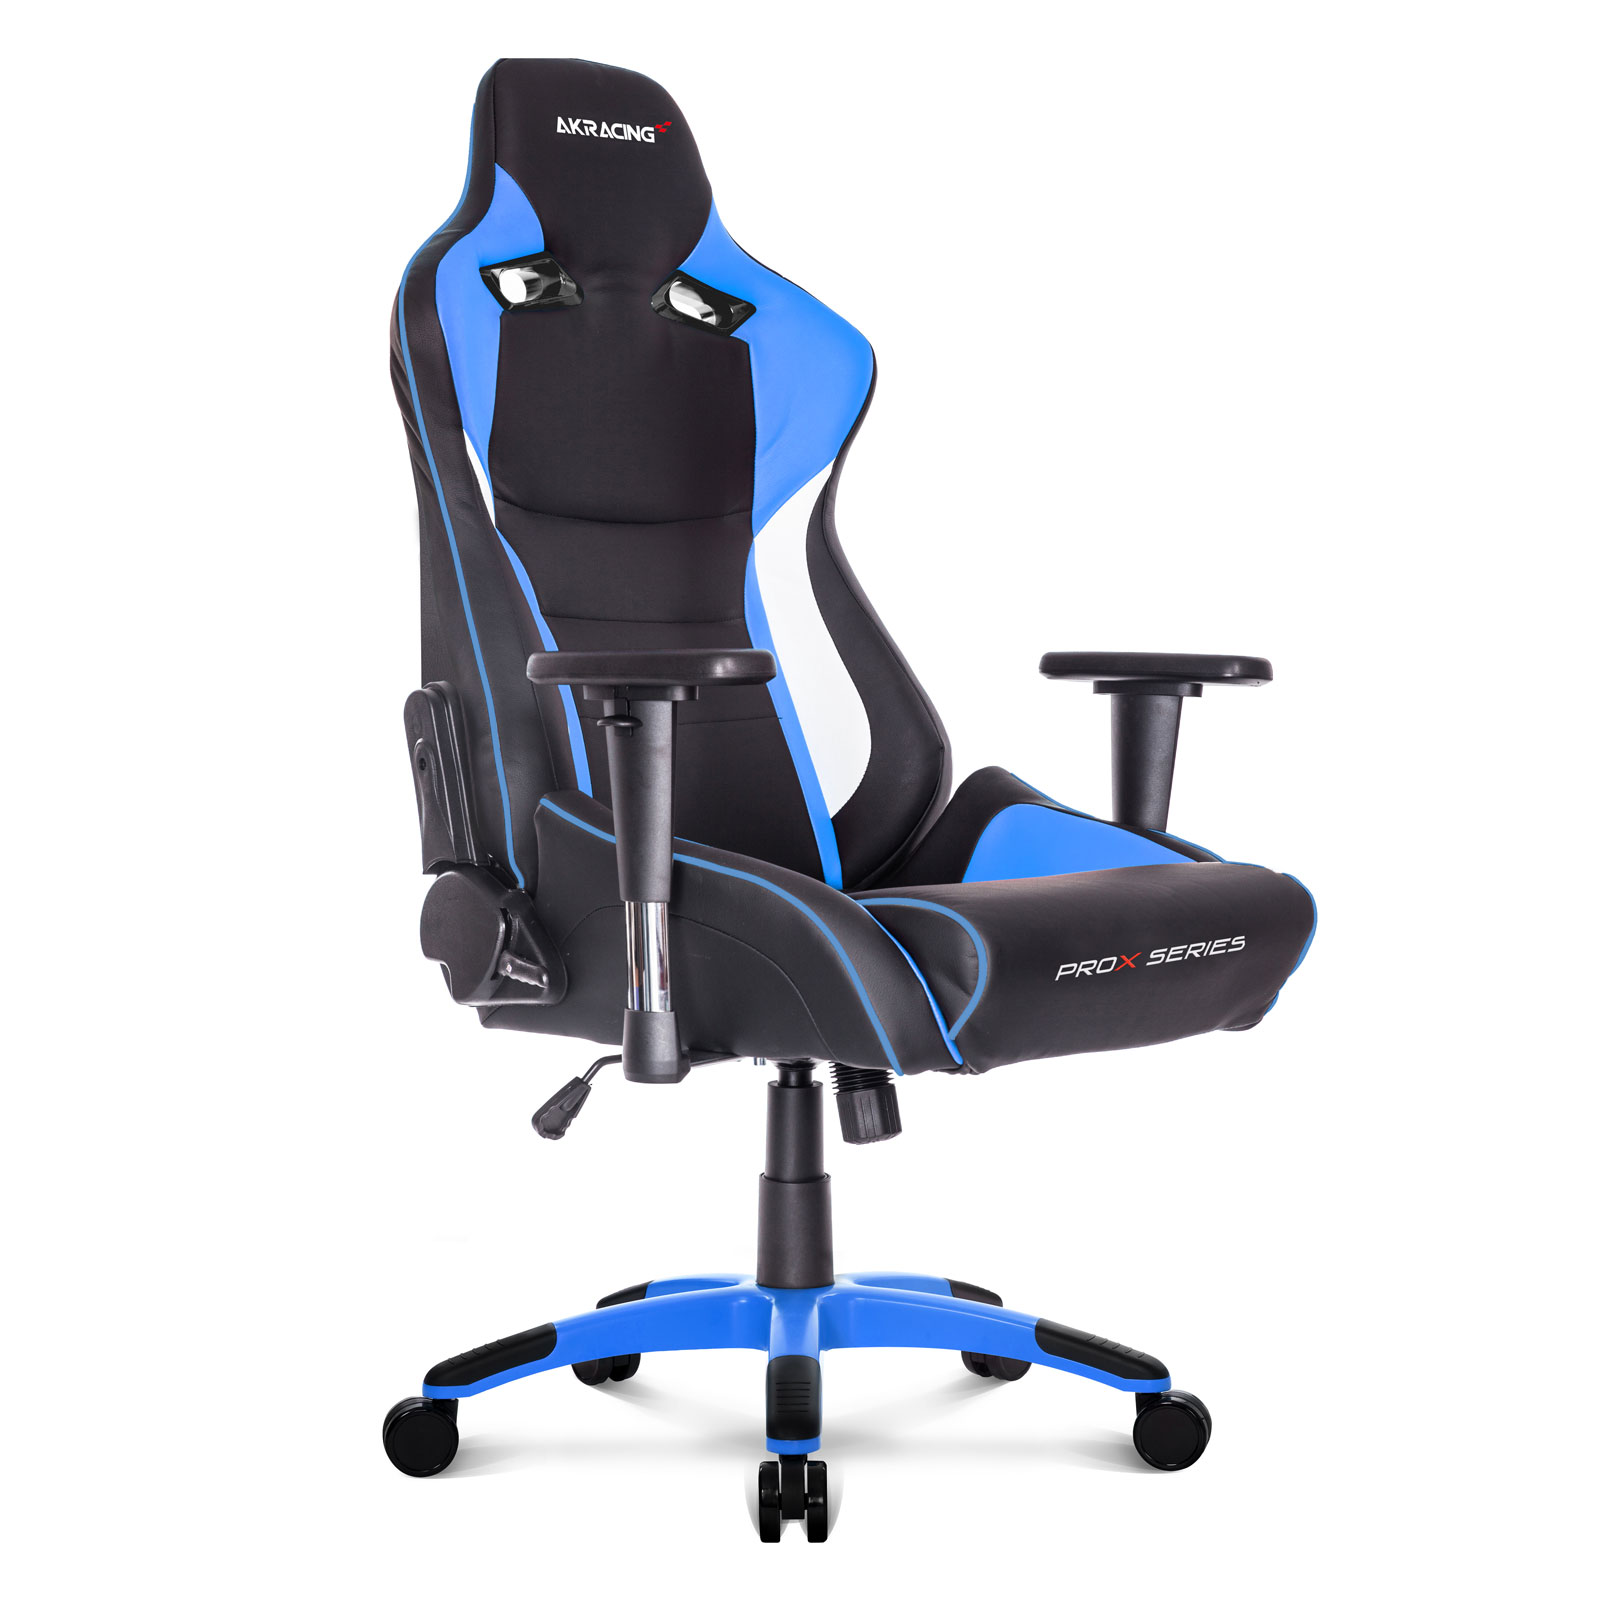 akracing prox gaming chair bleu fauteuil gamer akracing sur. Black Bedroom Furniture Sets. Home Design Ideas